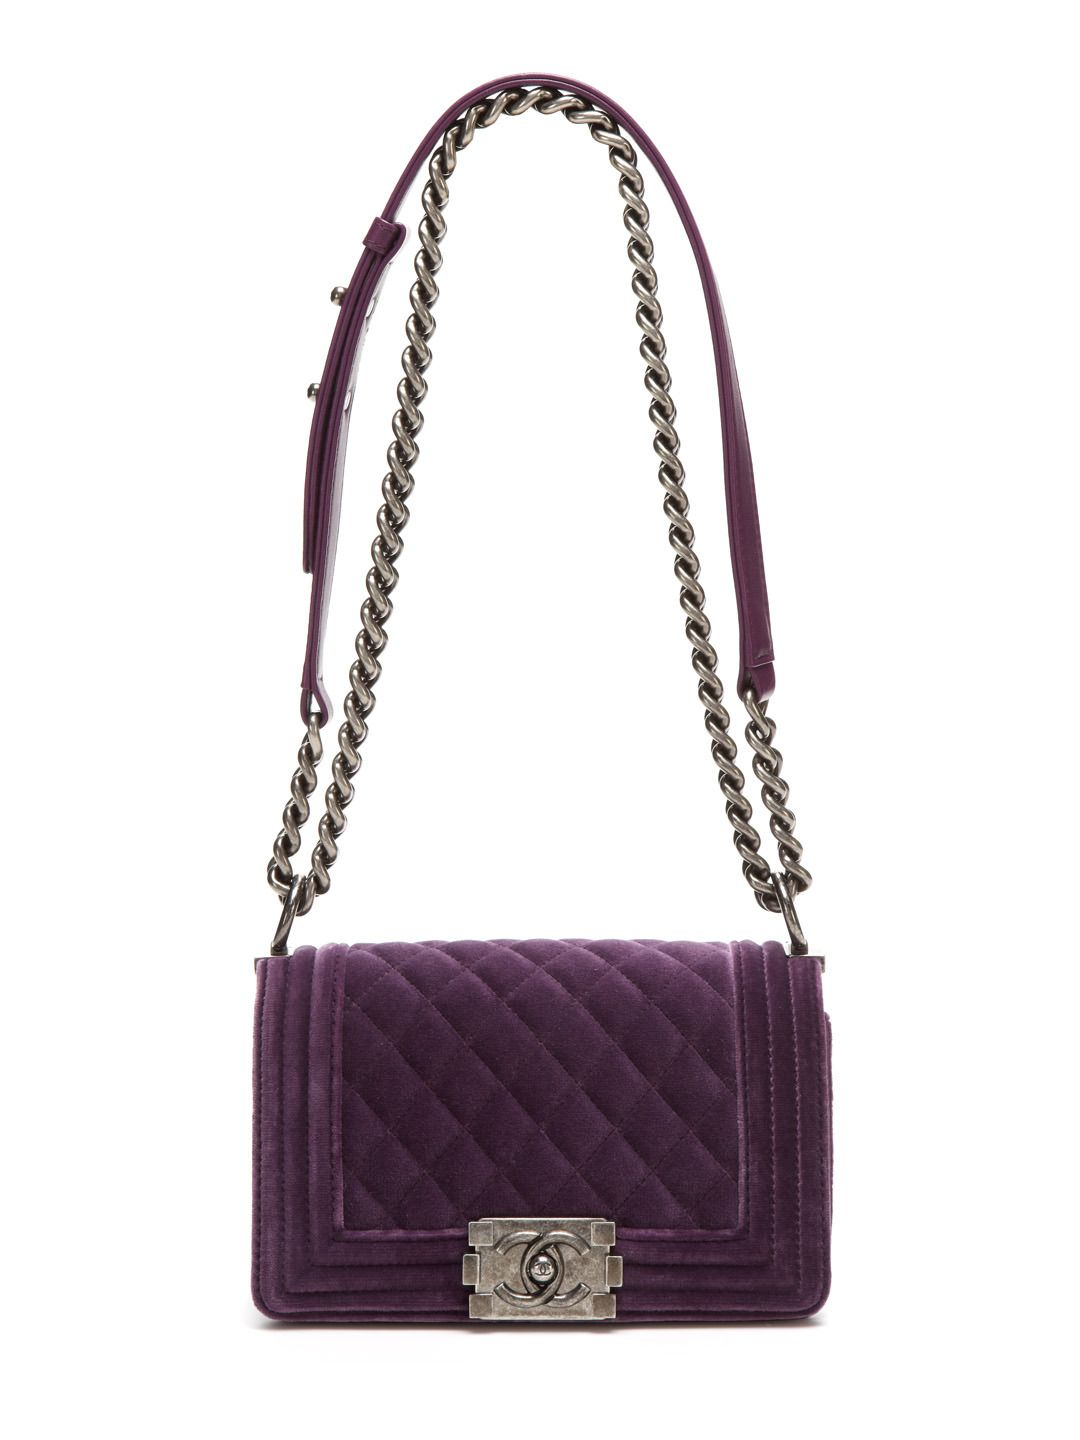 5a00c8bc3d0403 Purple Quilted Velvet Small Boy Shoulder Chain Bag by Chanel at Gilt ...